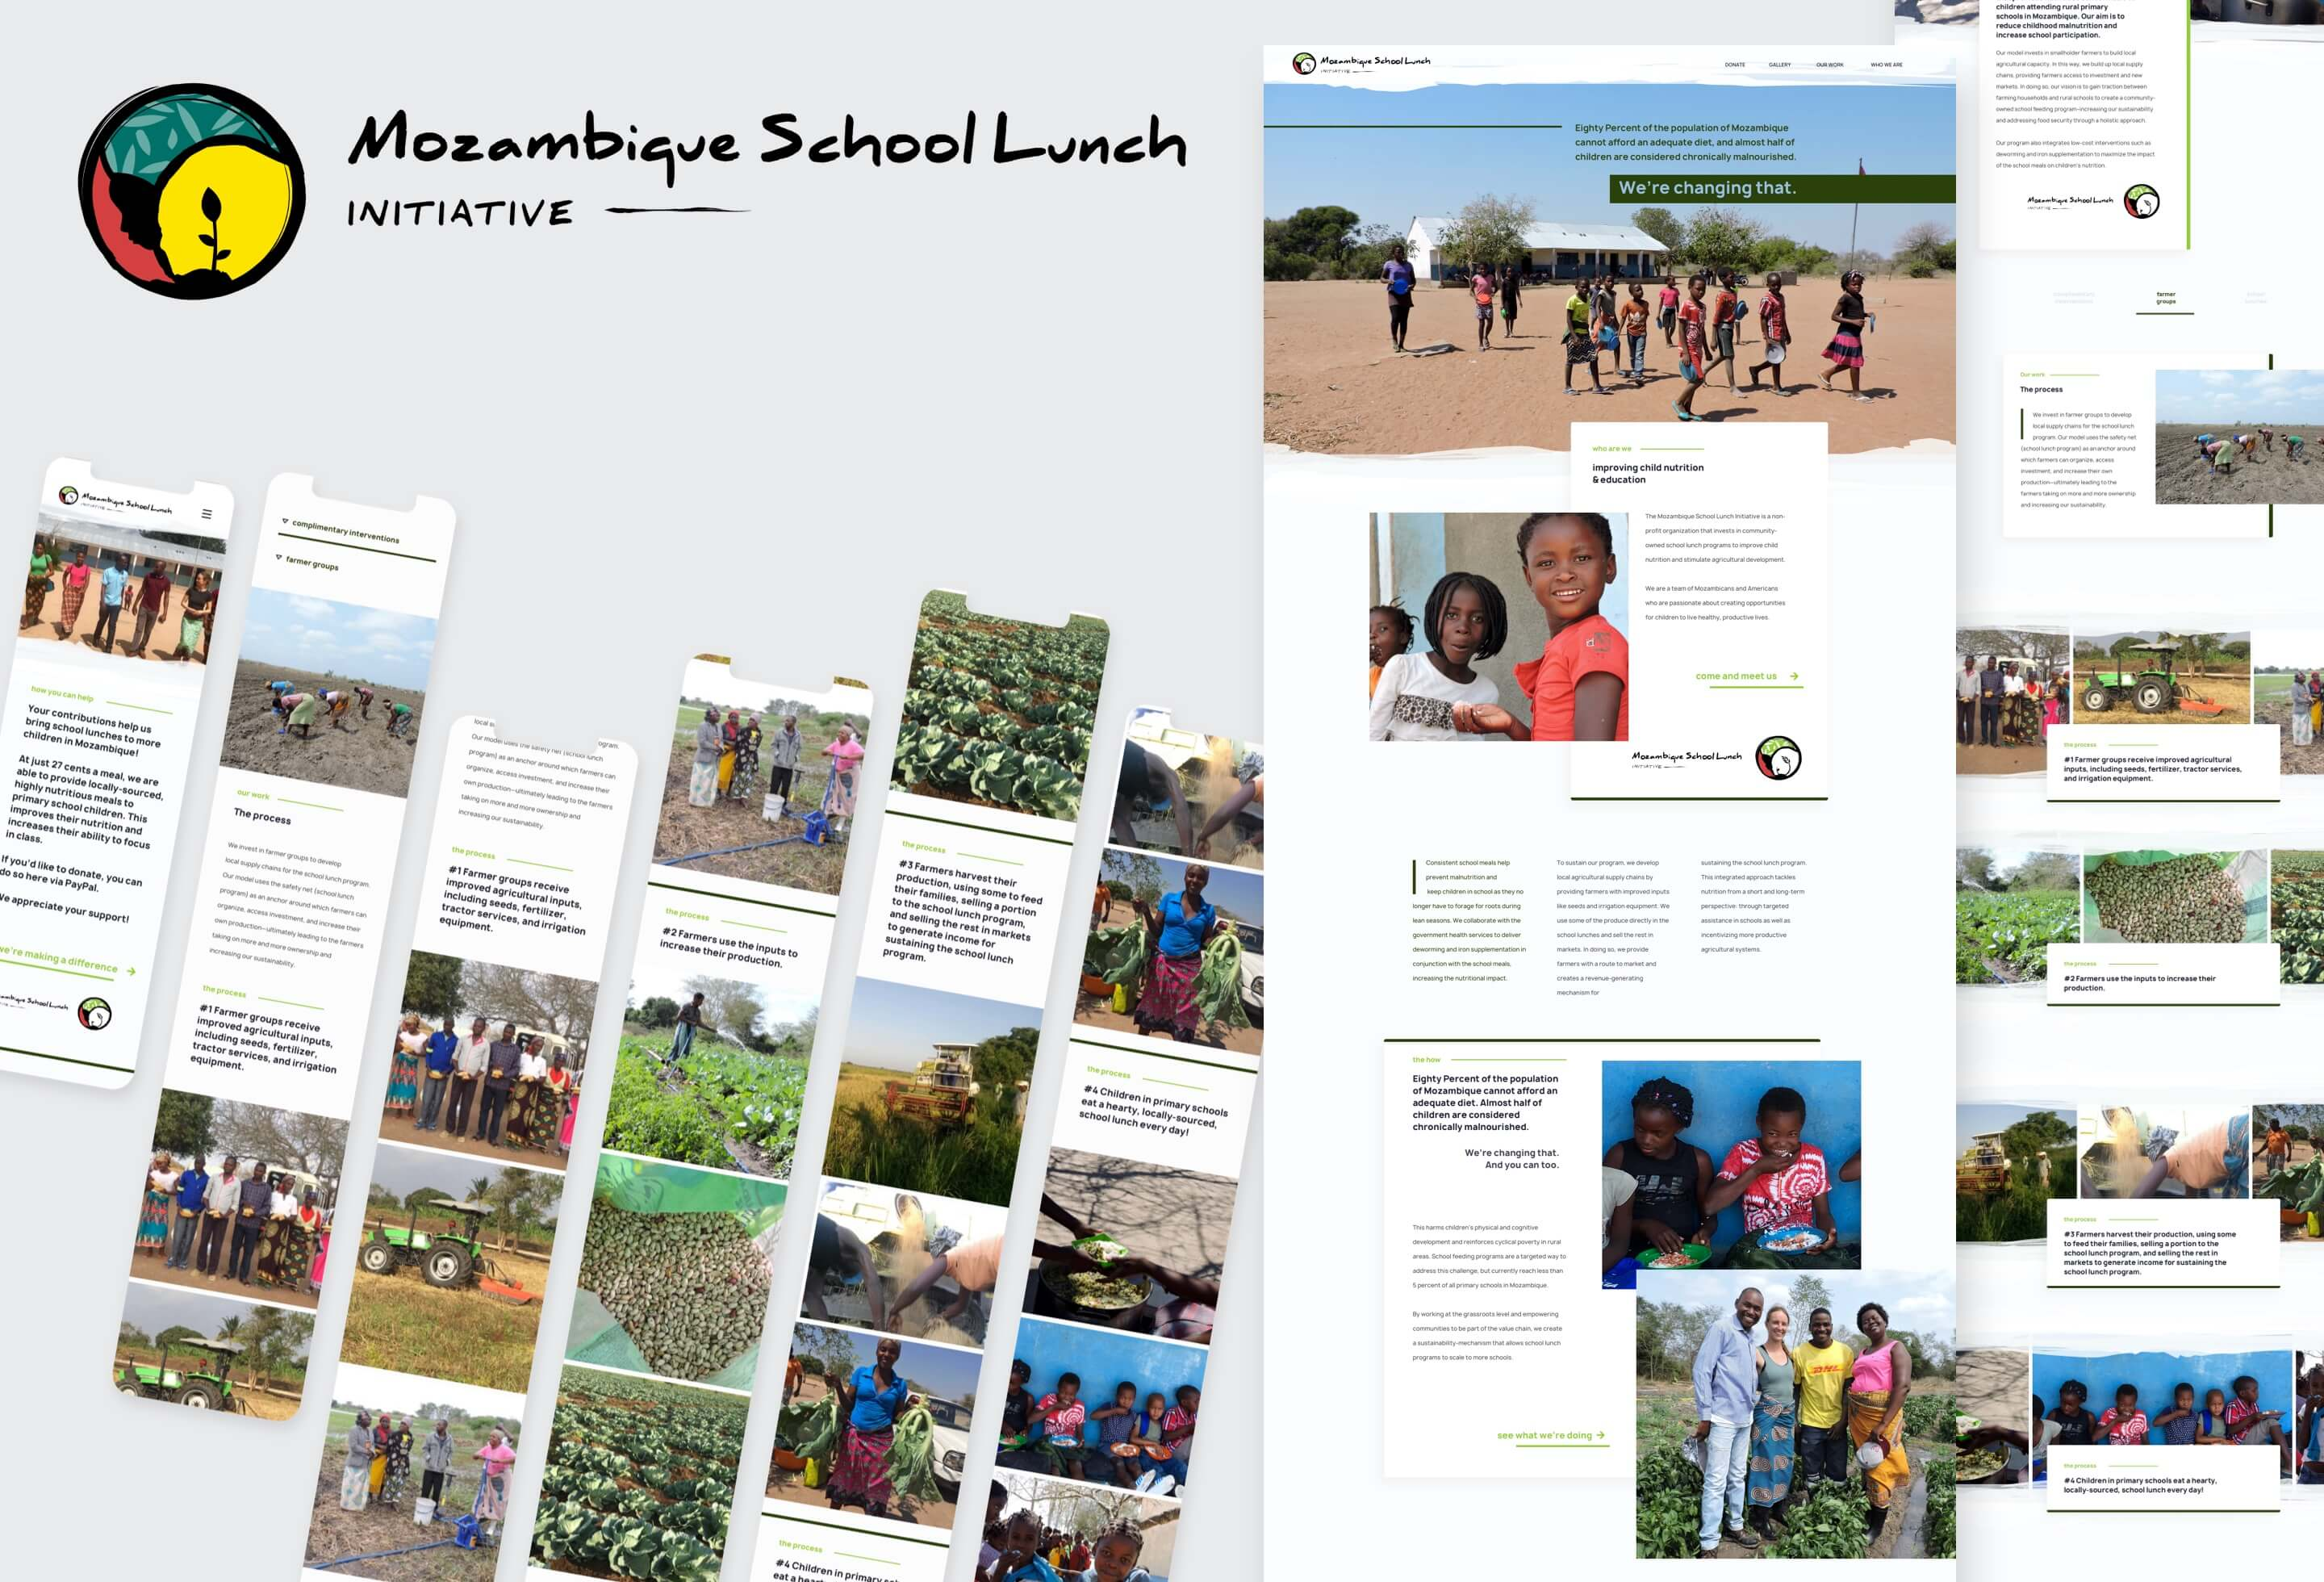 Hero Image of the Mozambique School Lunch Initiative